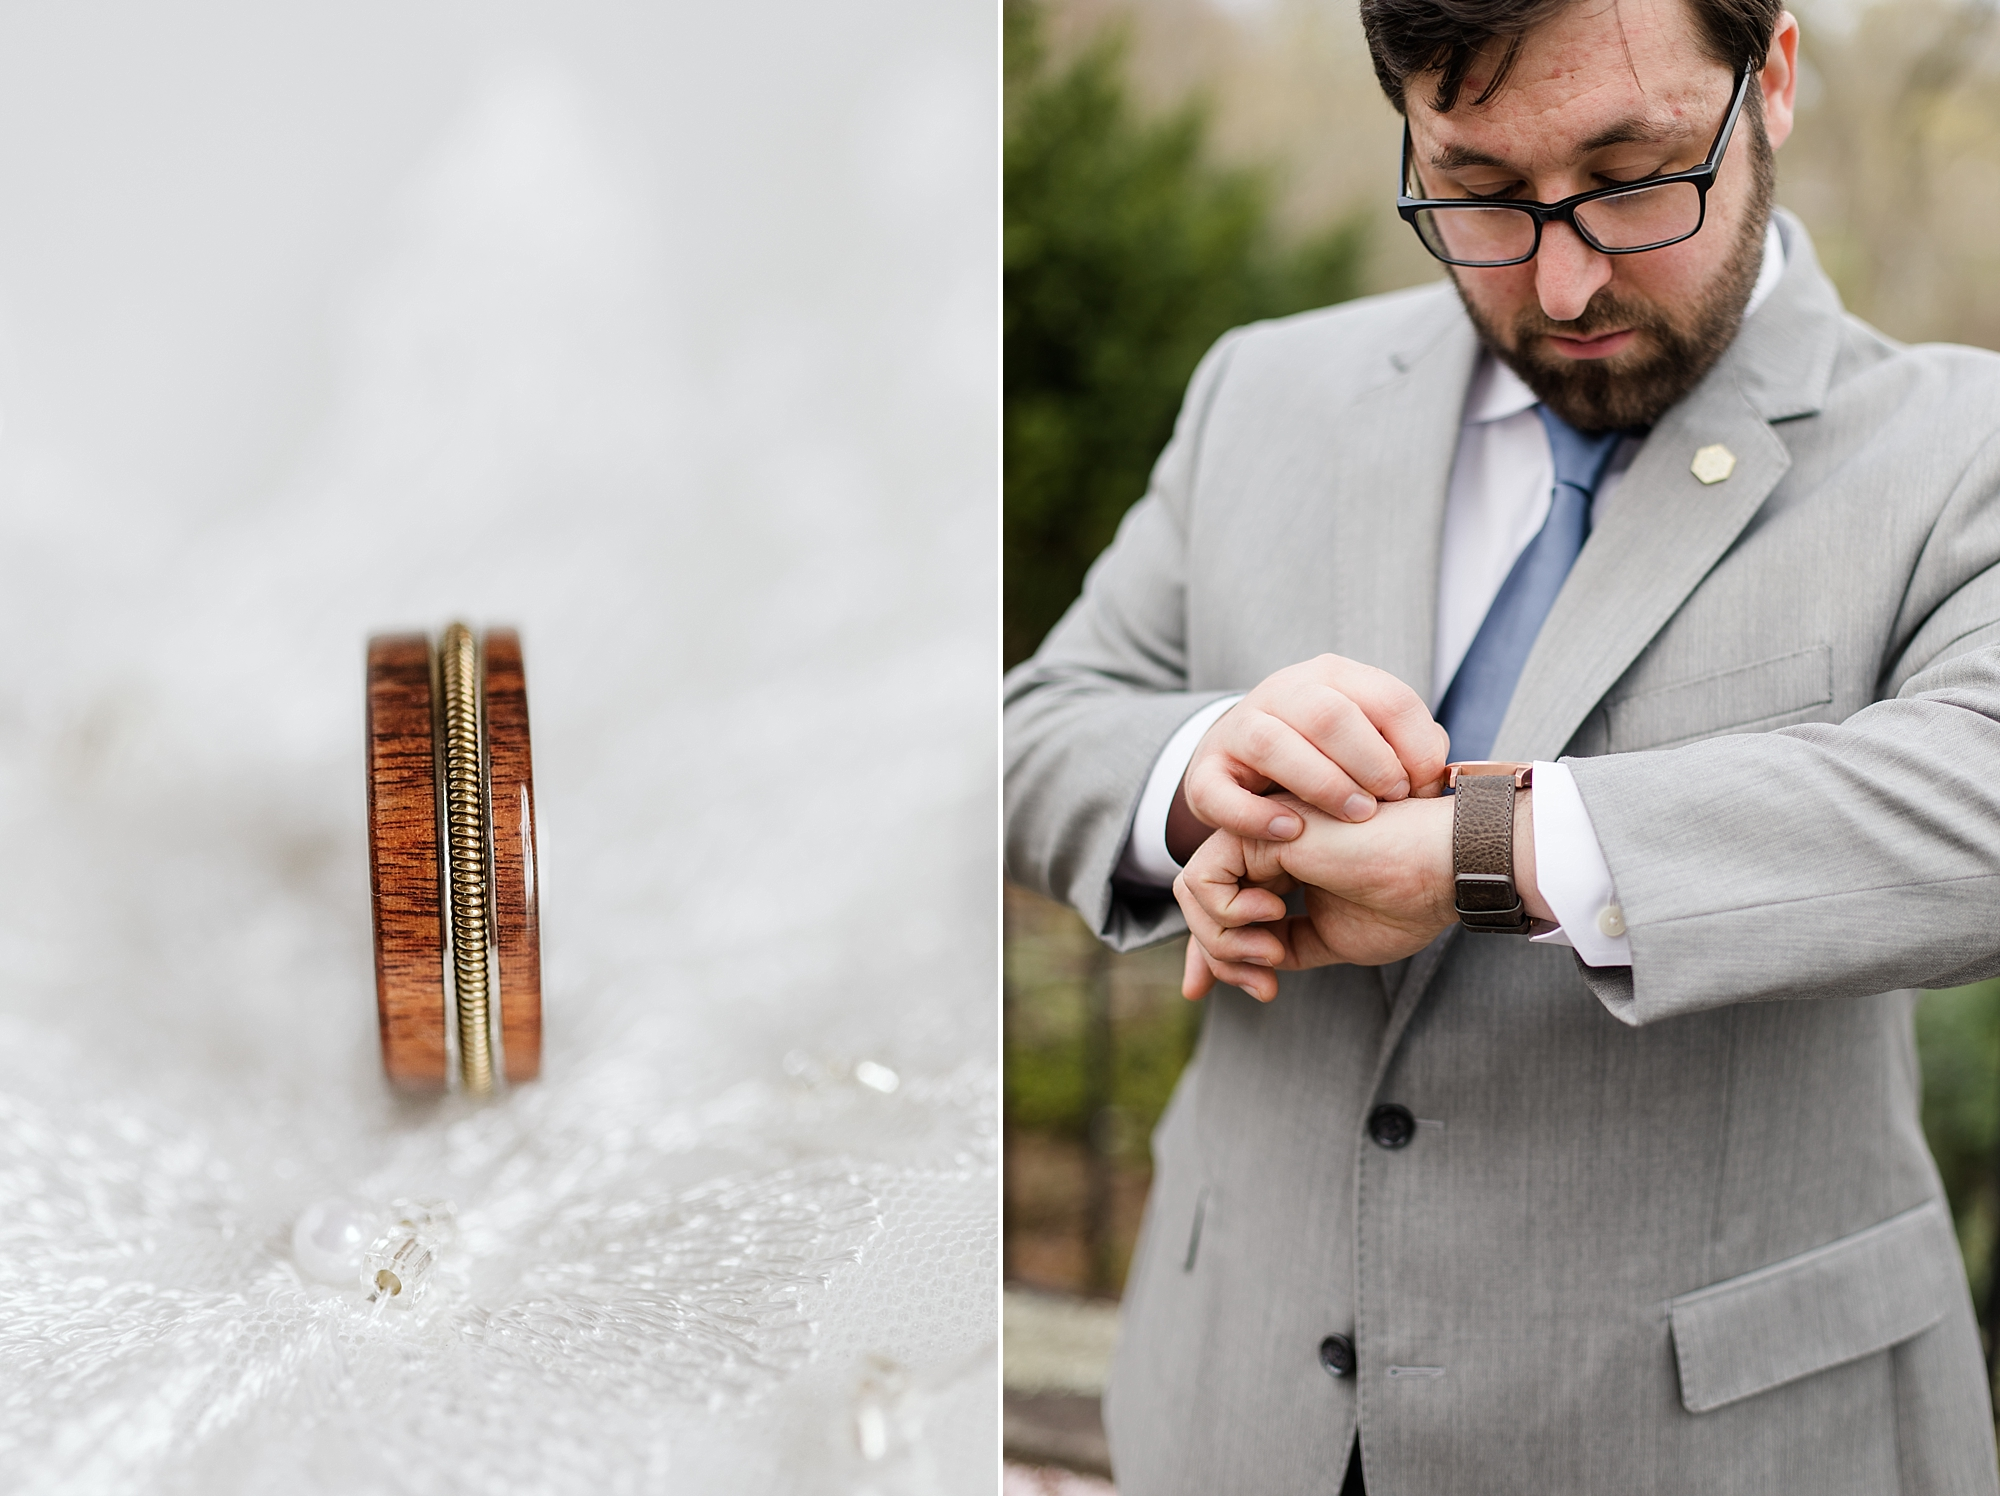 Can you guess what's in the middle of his wedding band? Keep scrolling to find out